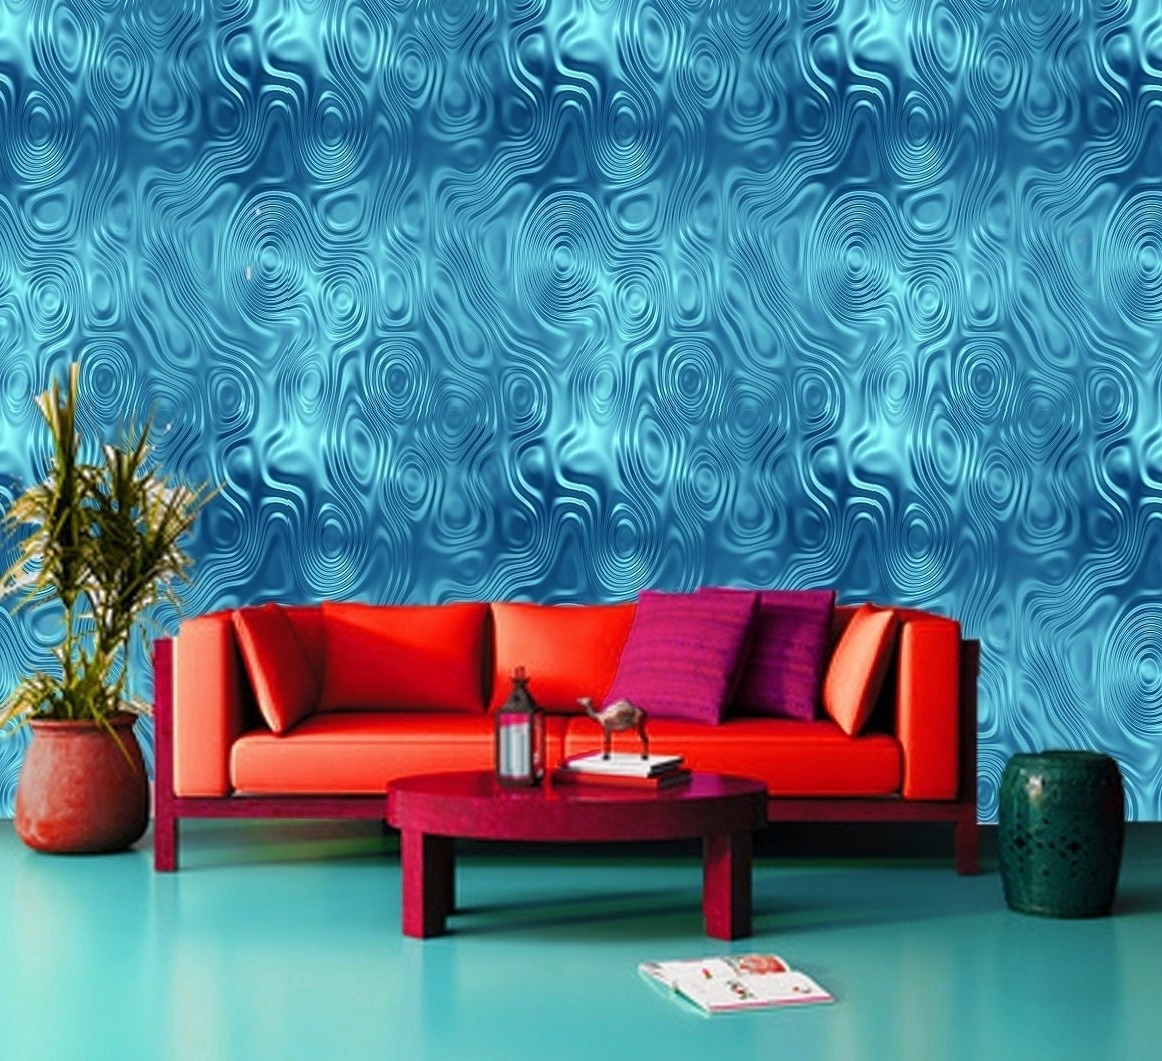 Best And Newest Tropical Water Climax, Sea, Ocean Blue 3d Wallpaper Wall Mural Pertaining To 3d Wall Art Wallpaper (View 15 of 15)